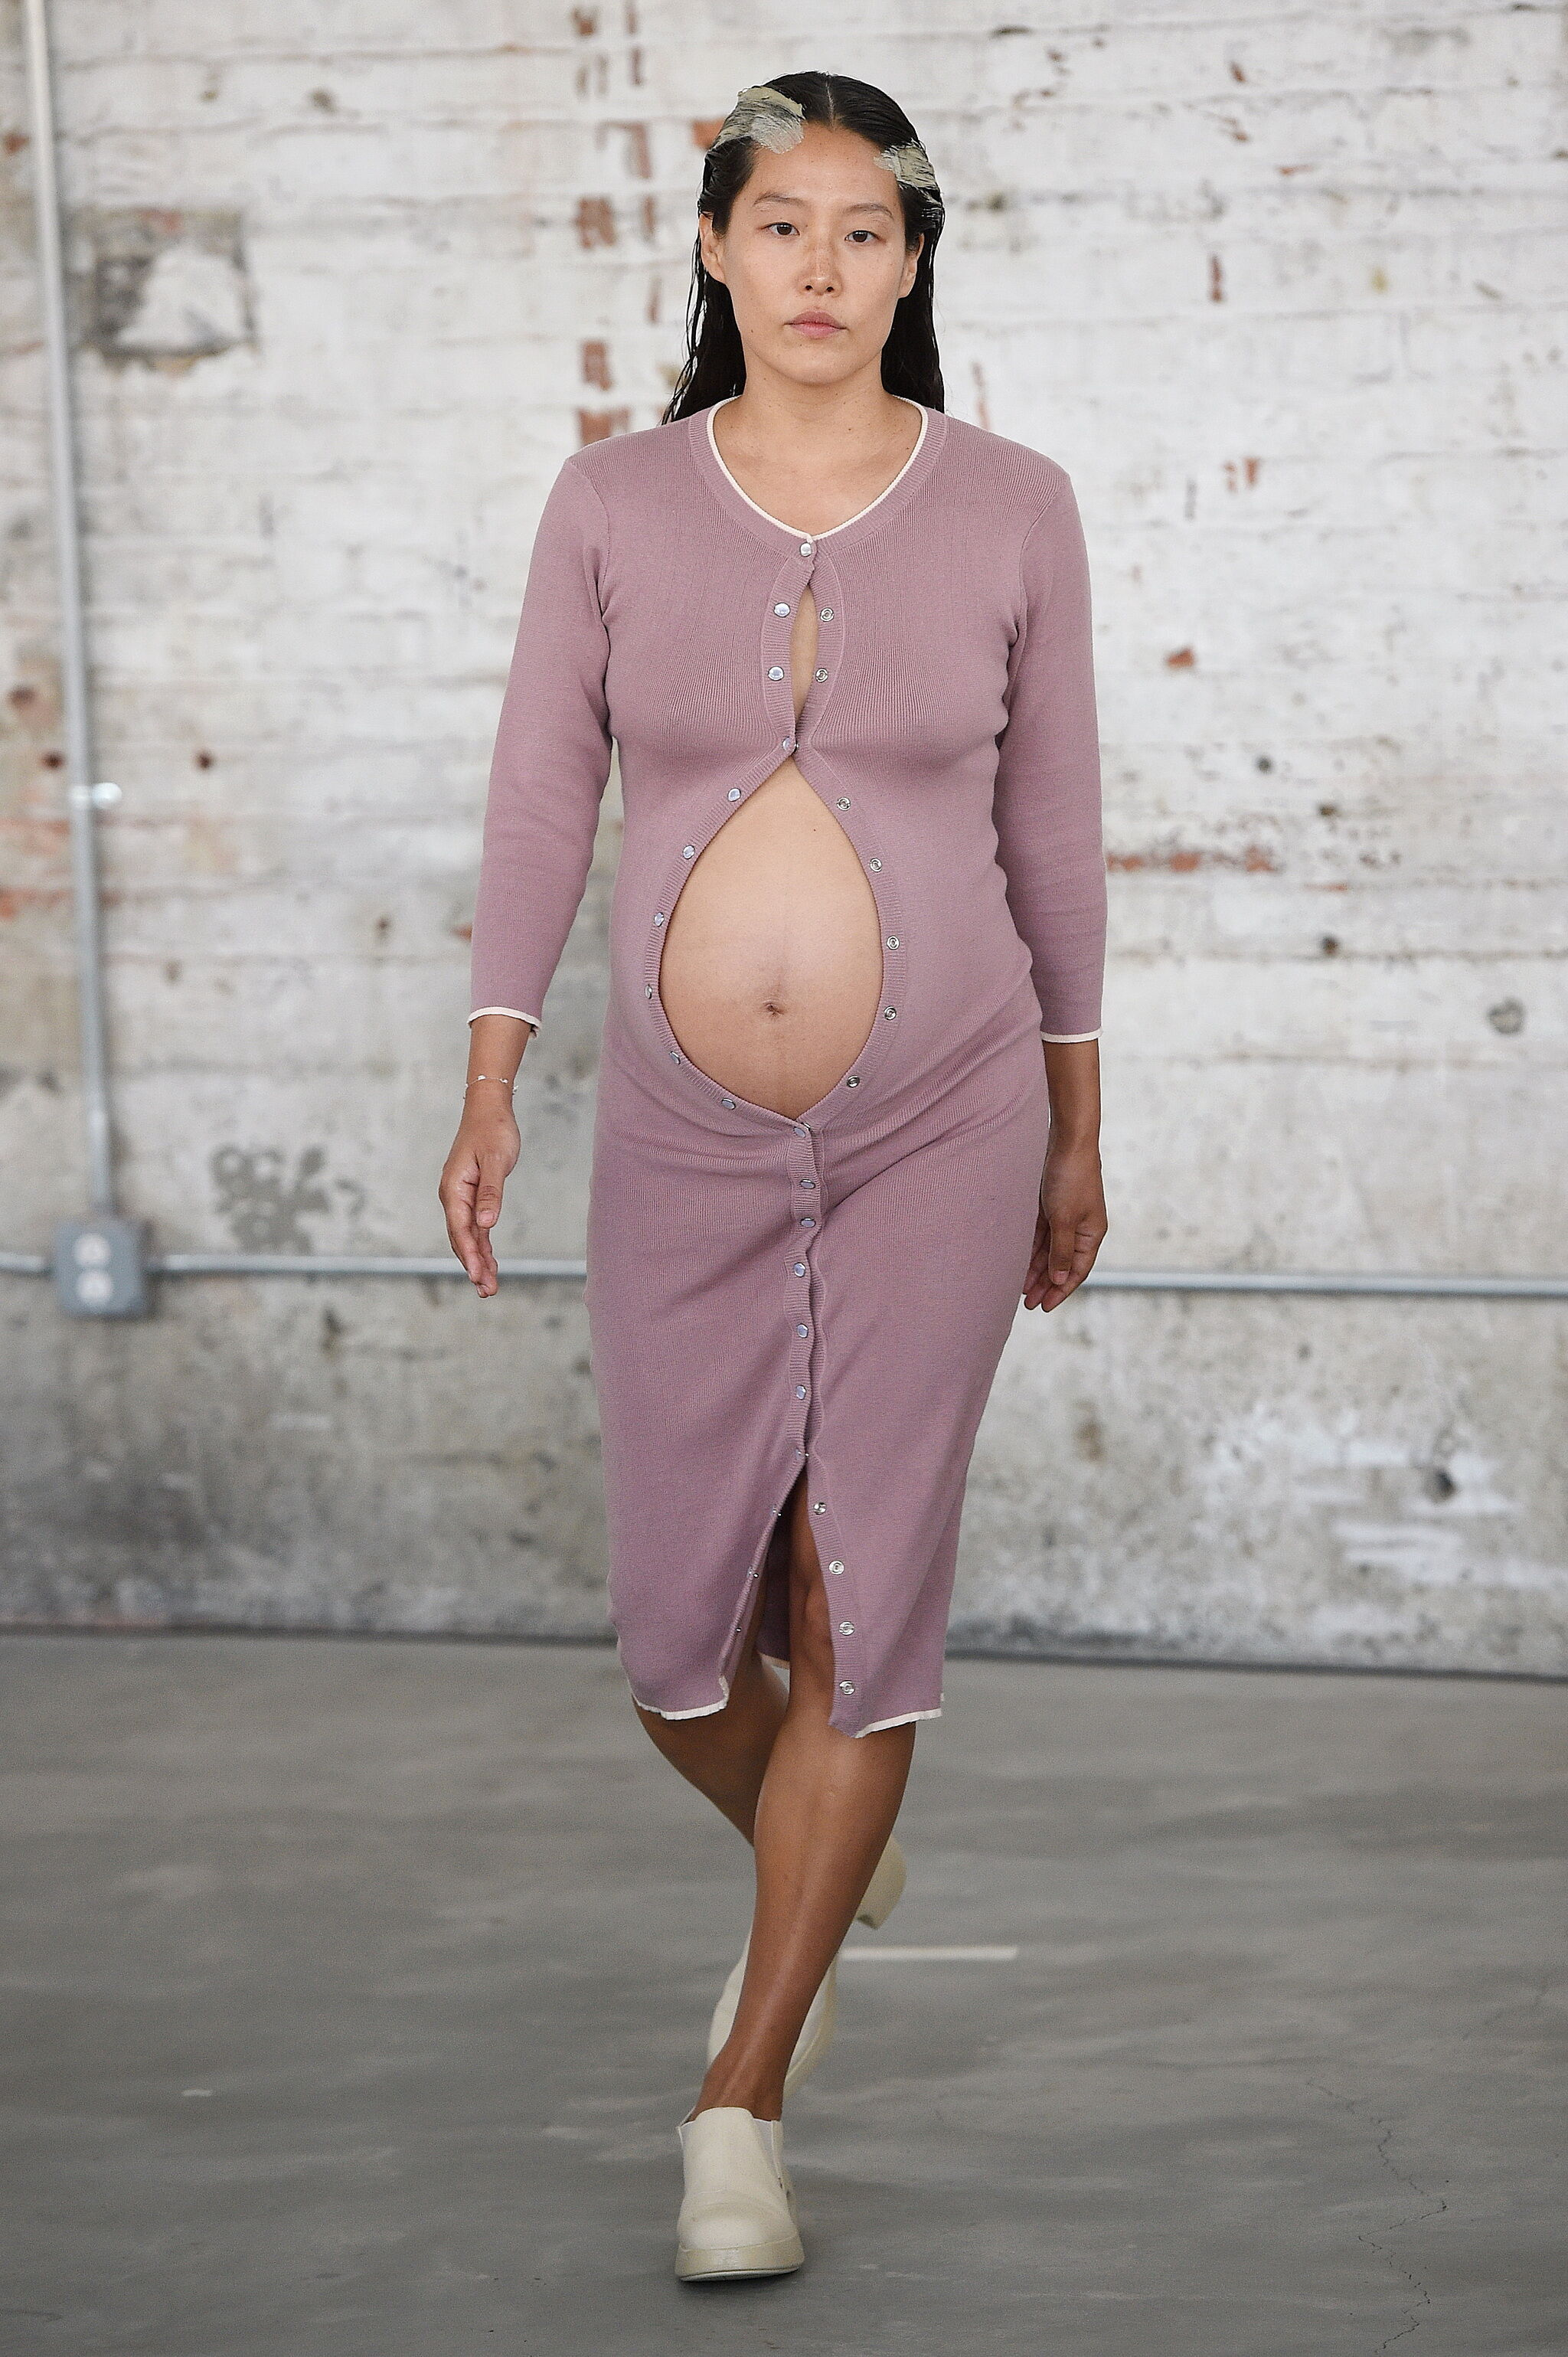 A pregnant woman in a dress opened at the stomach walking a runway.